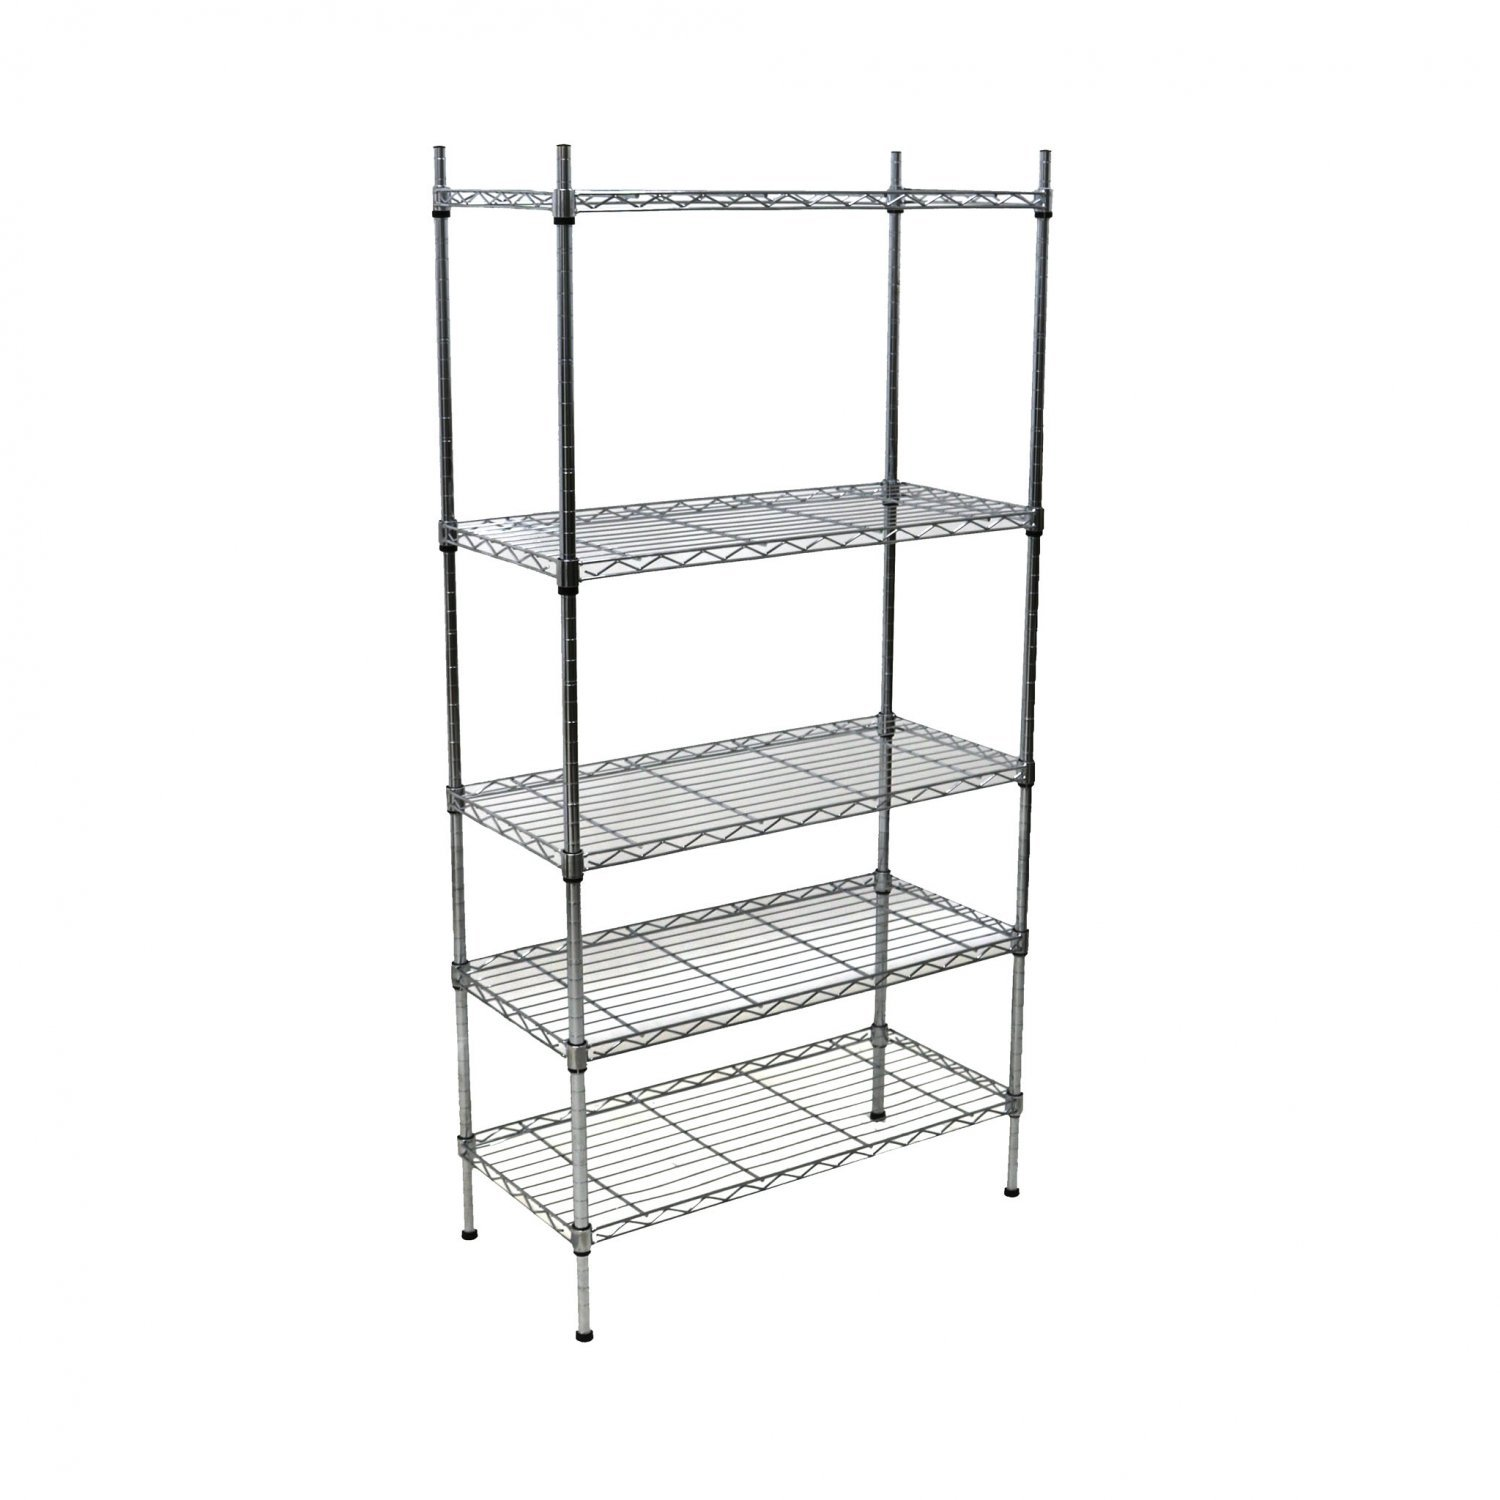 steel storage rack 5 tier heavy duty steel wire rack shelf storage shelving 26780